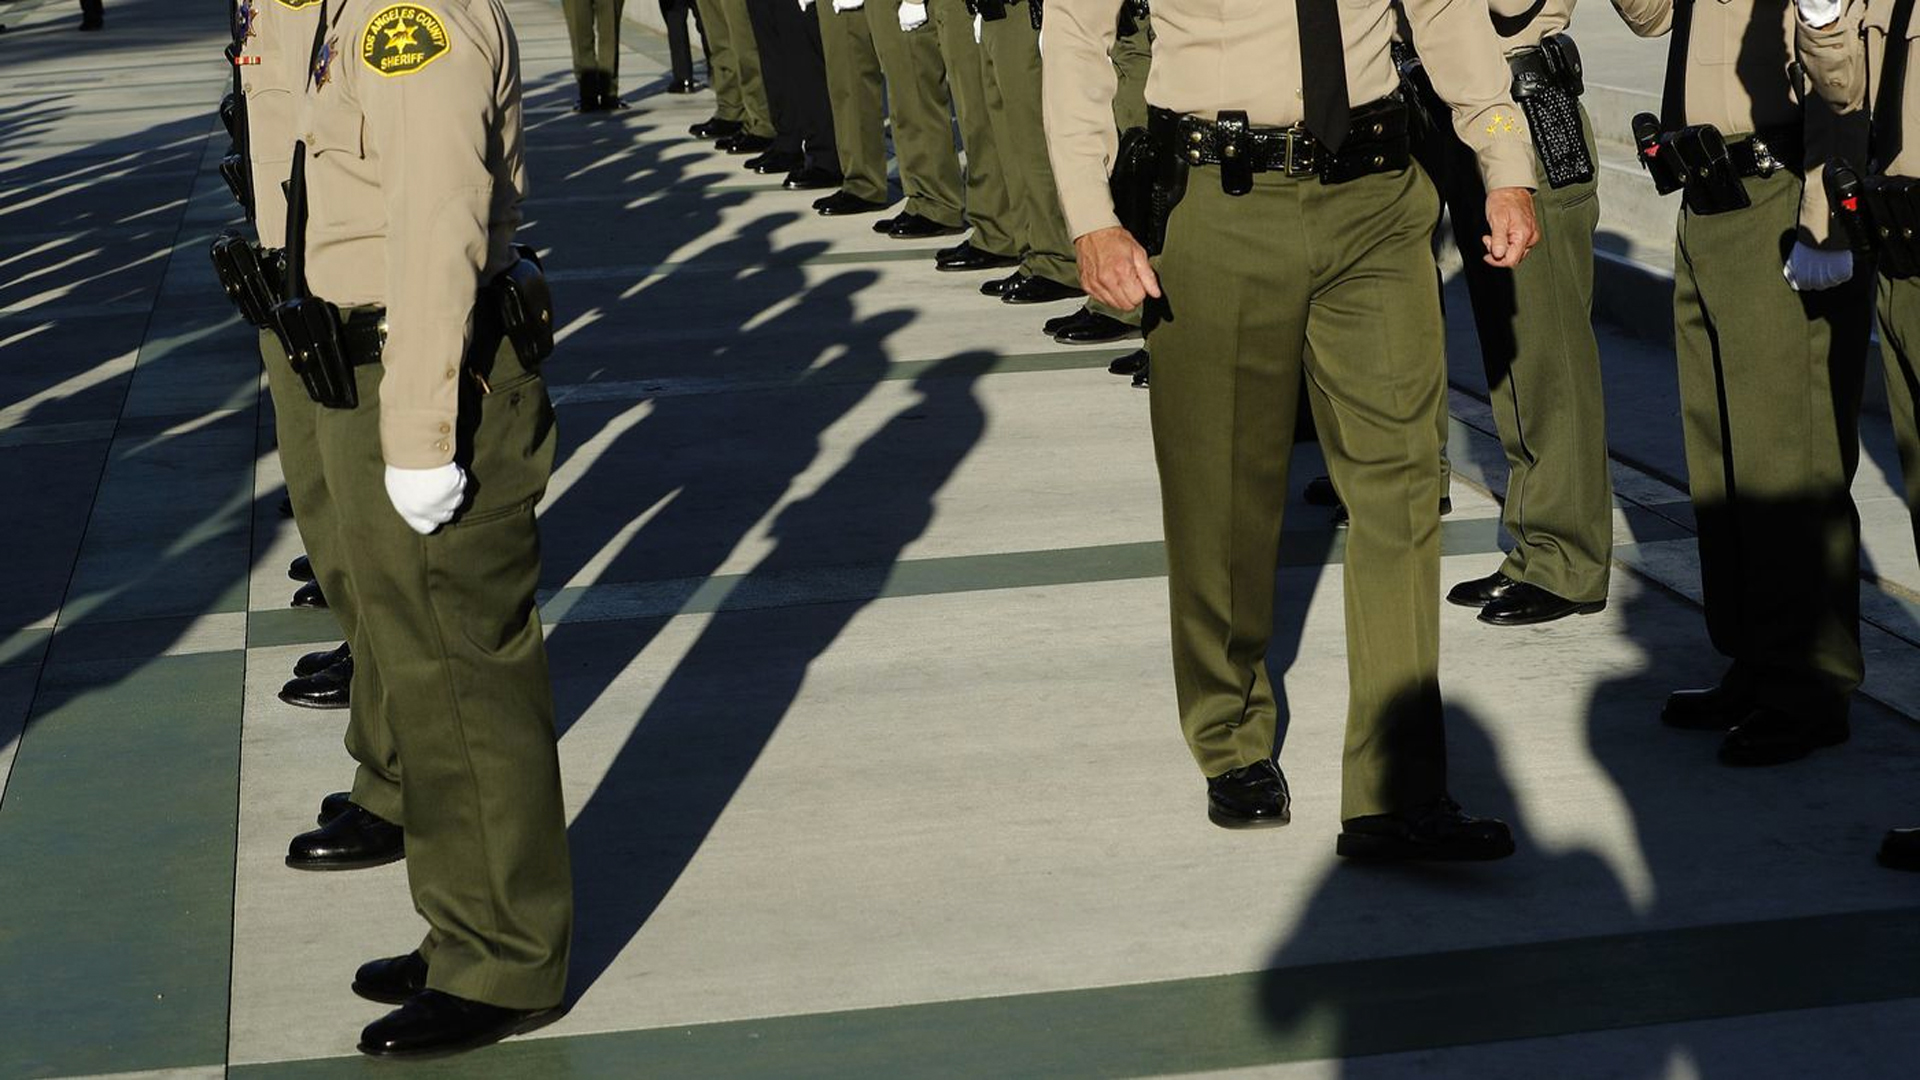 A Los Angeles County sheriff's narcotics detective was allegedly captured on a wiretap discussing marijuana and drug payments, but an appeals court this week decided the evidence could not be used in the Sheriff's Department's attempt to fire him. (Credit: Mel Melcon/Los Angeles Times)